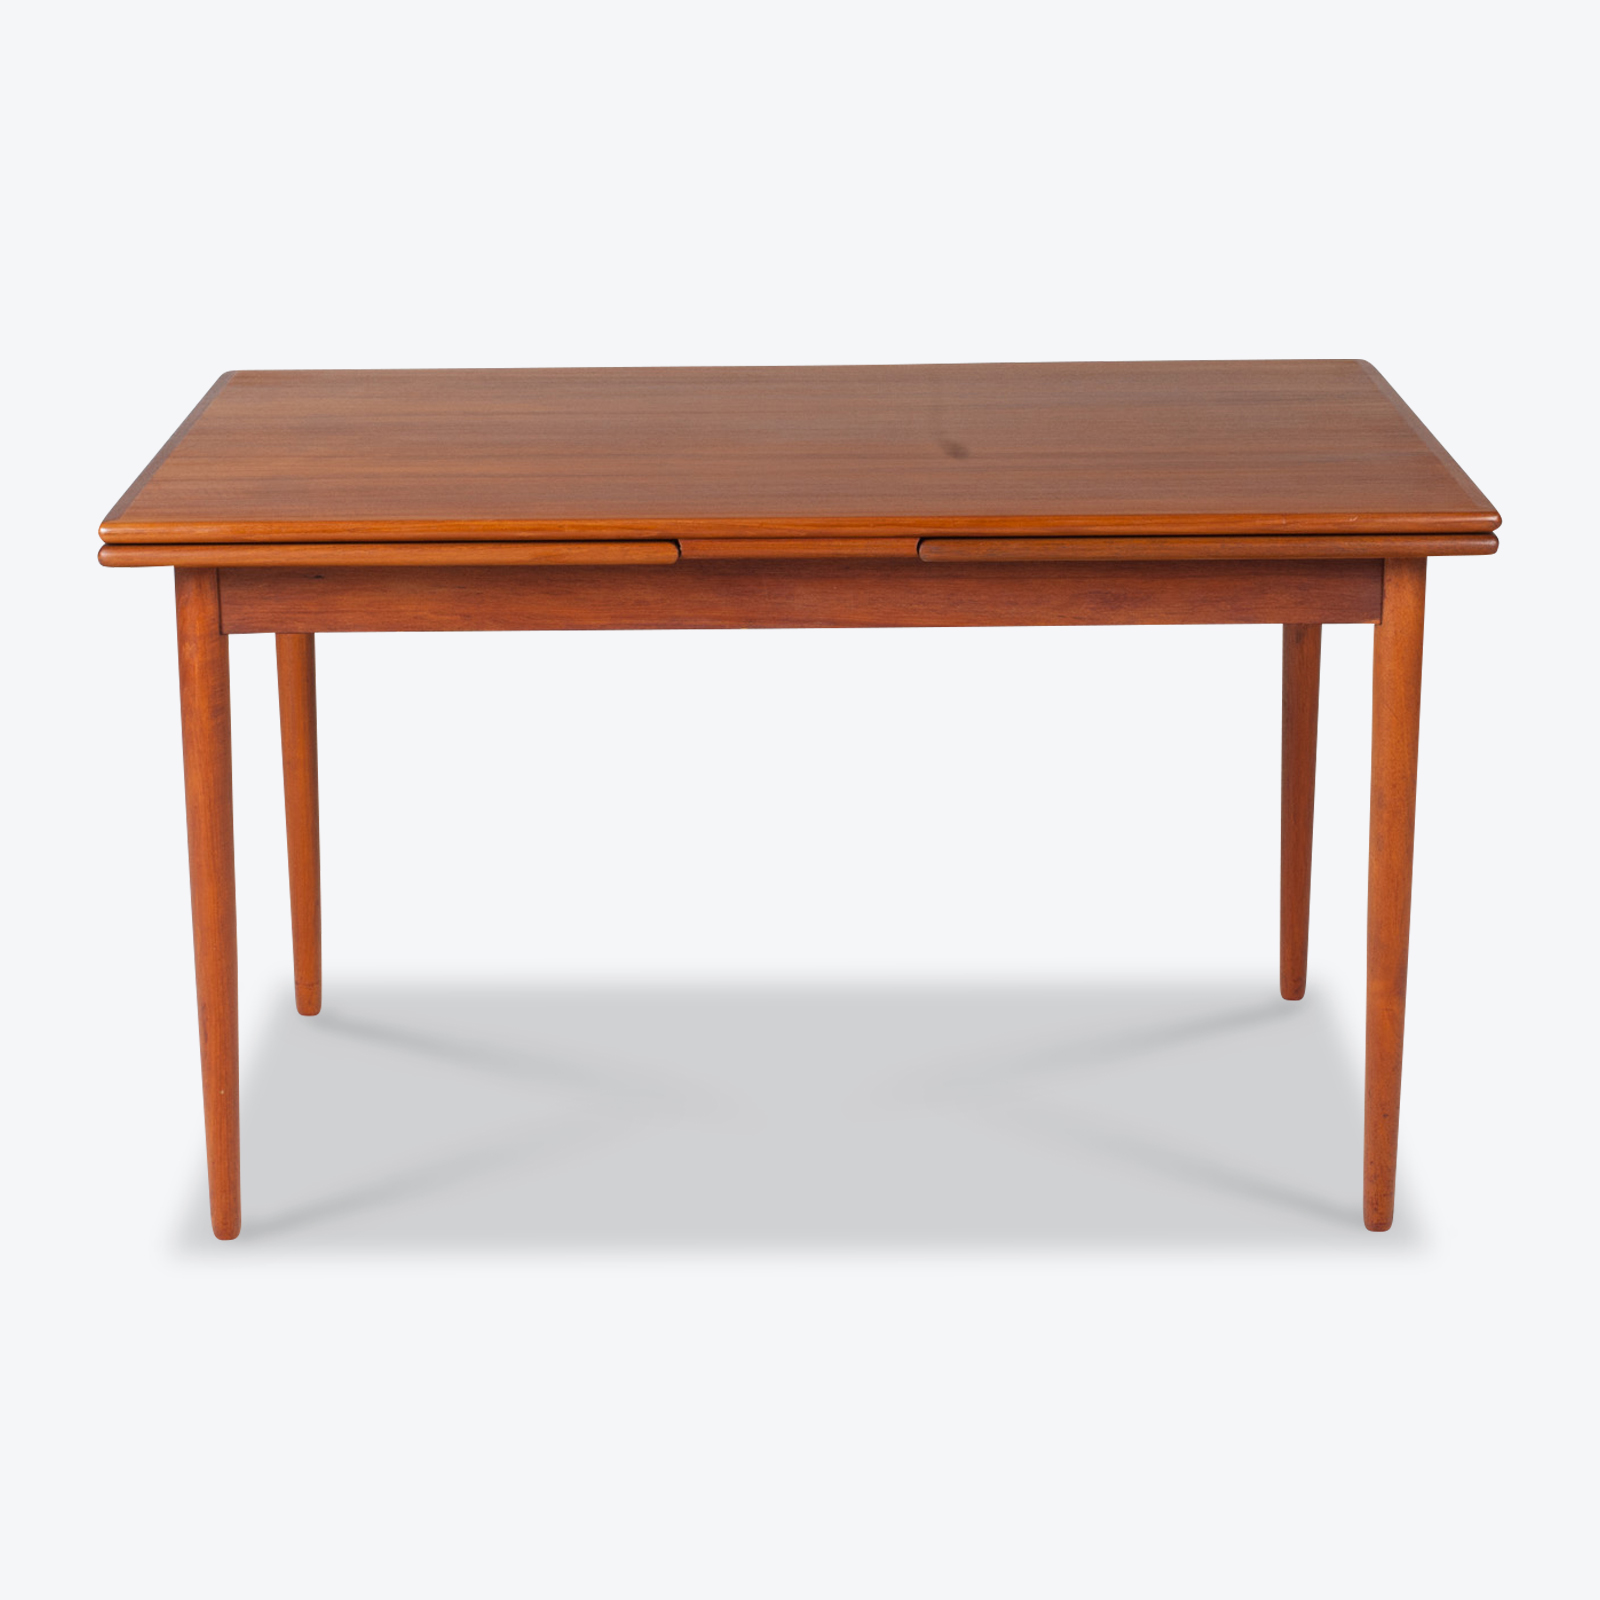 Rectangular Dining Table In Teak With Concealed Extentions 1960s Denmark 01